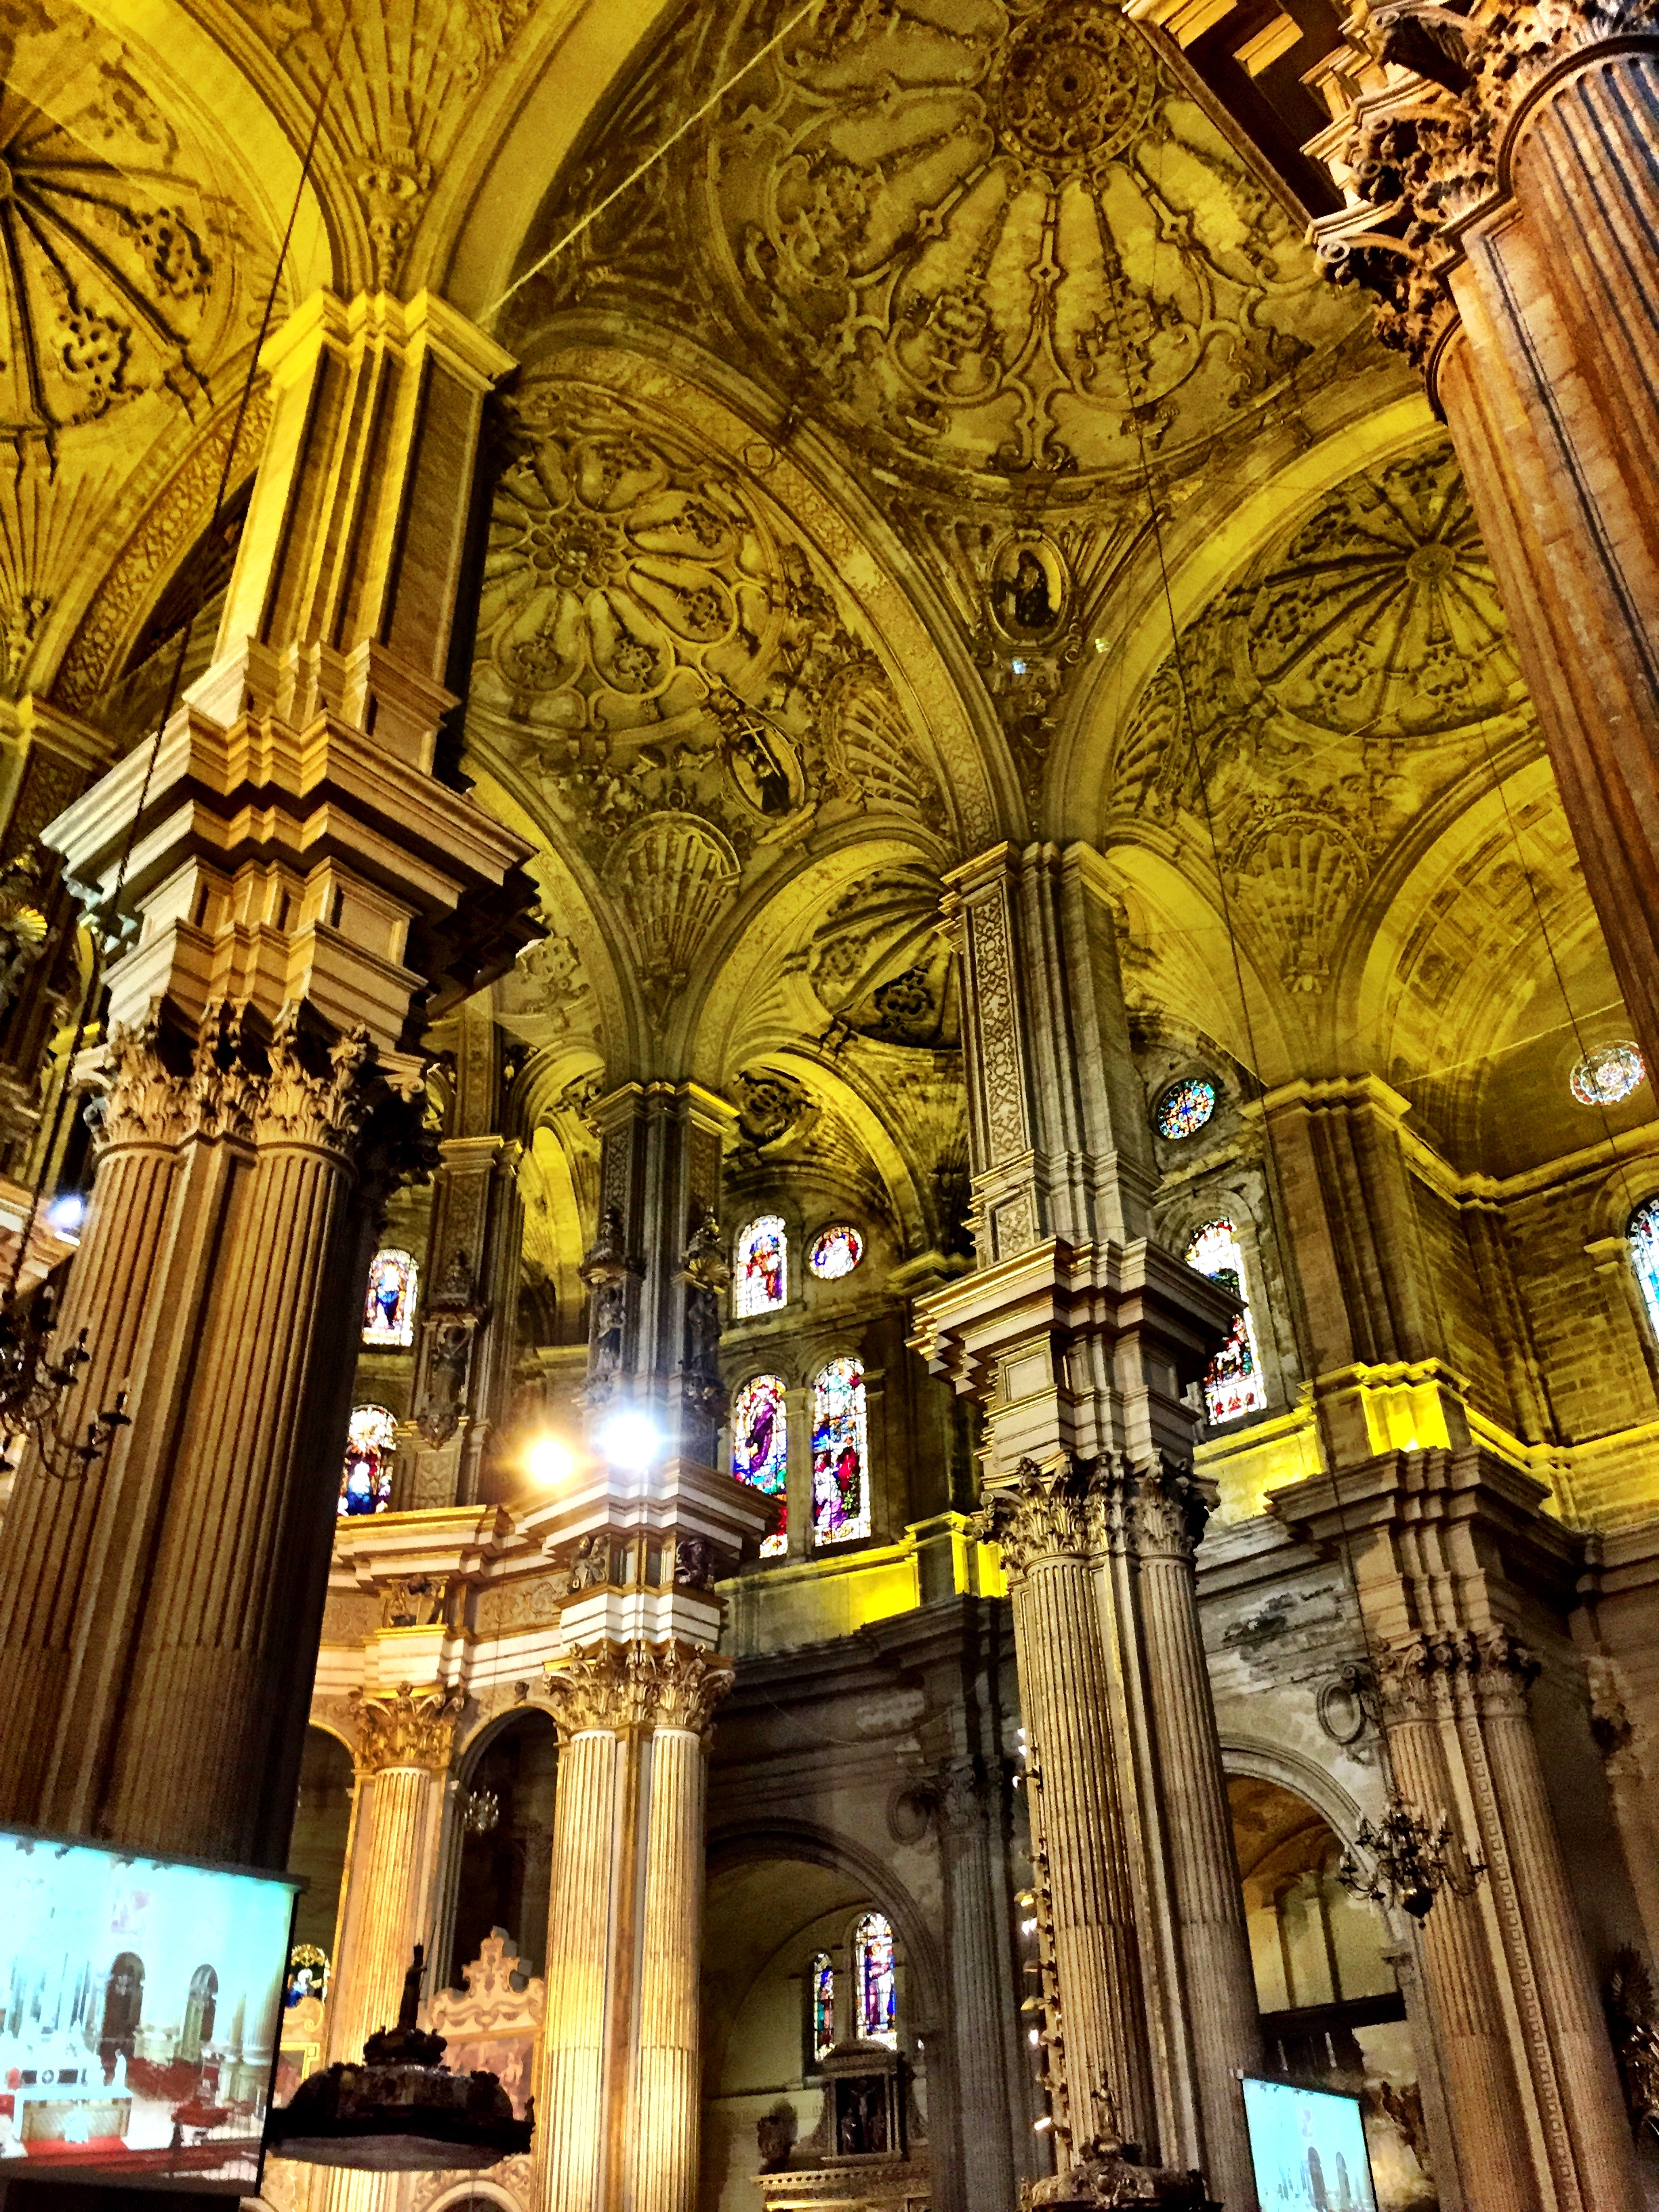 Wally took this one shot of the interior of the Málaga Cathedral, before the guards gestured violently at him